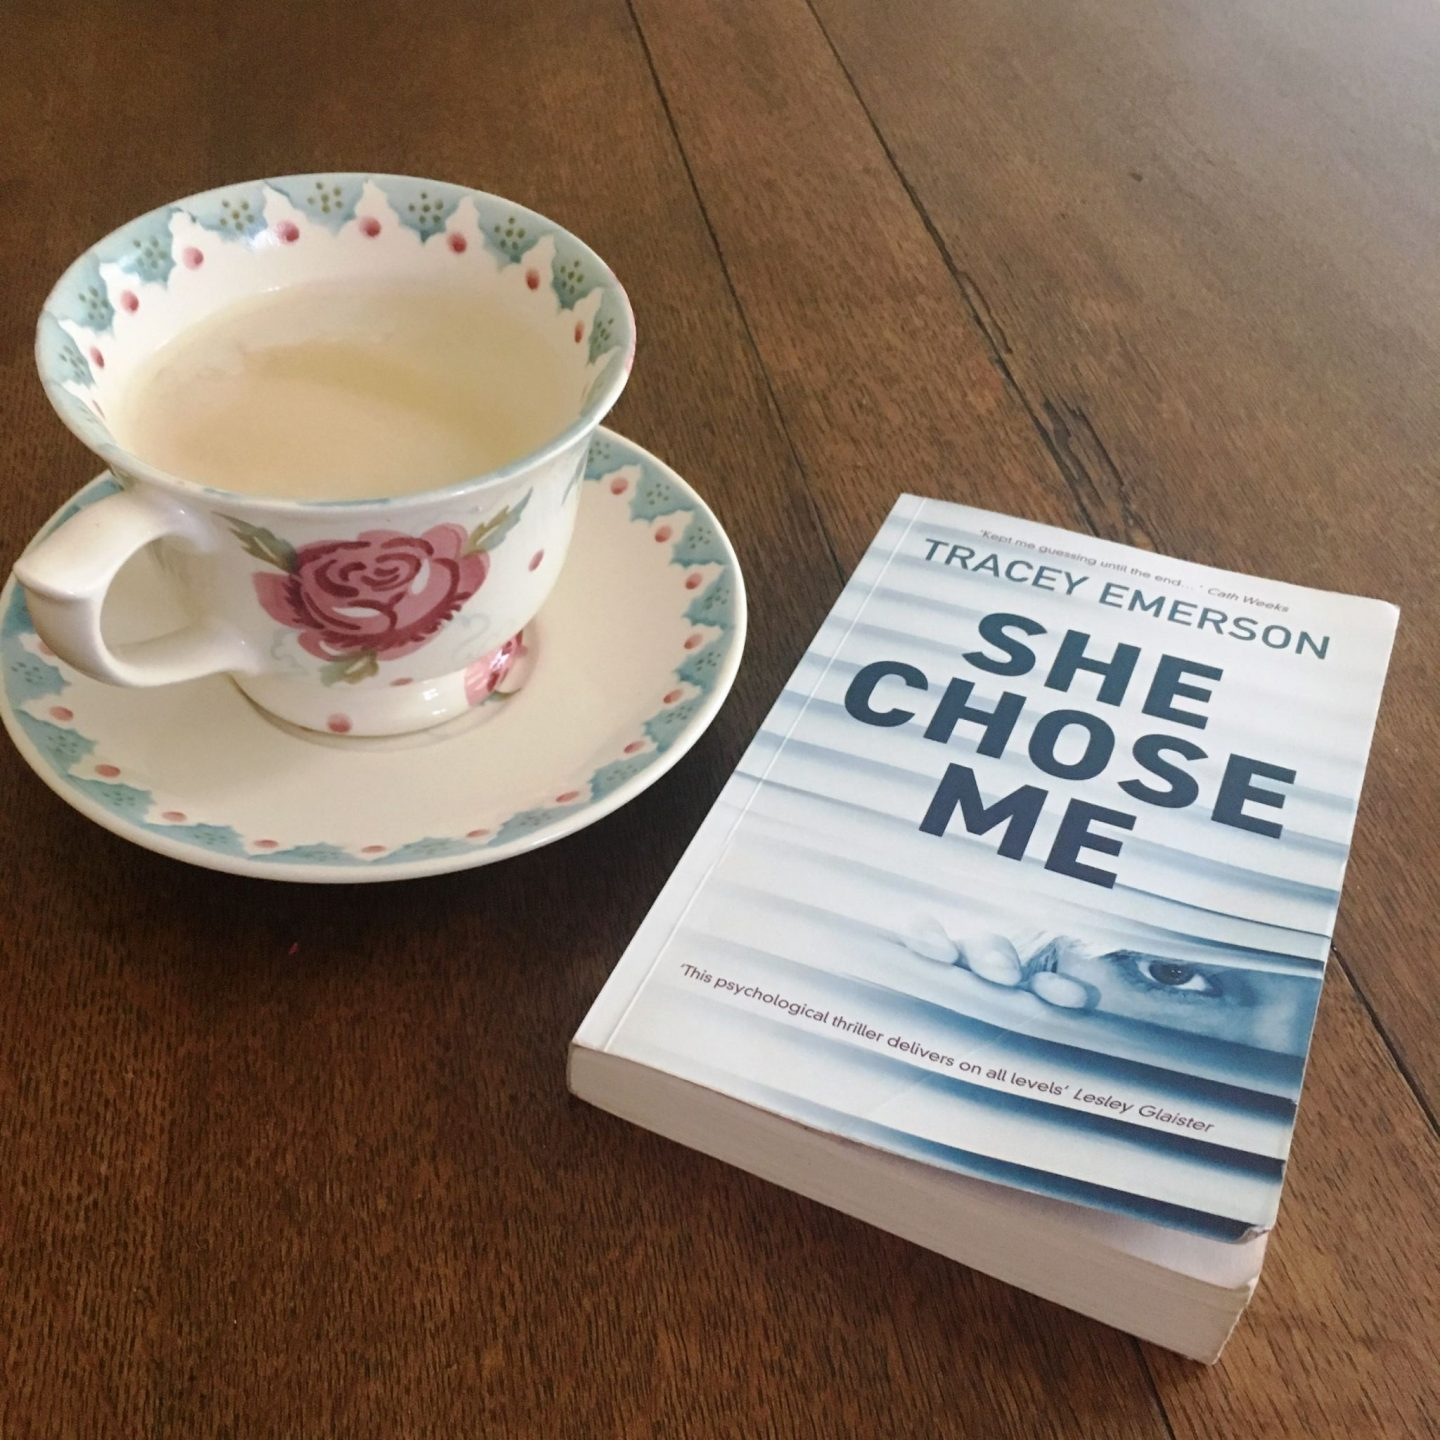 She Chose Me: a new psychological thriller that needs to be read